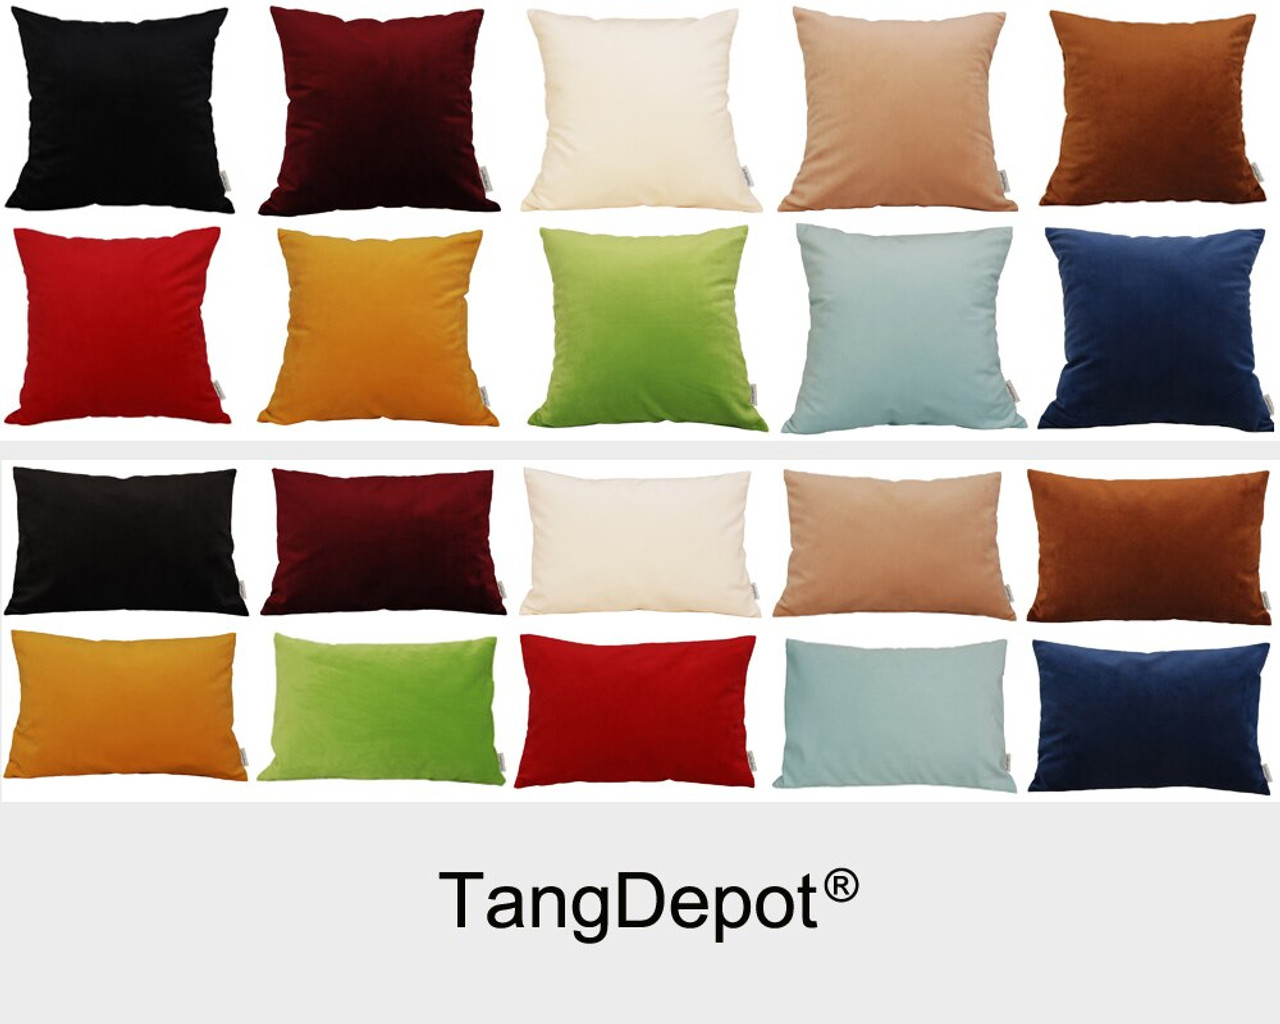 TangDepot Solid Velvet Throw Pillow Cover/Euro Sham/Cushion Sham, Super Luxury Soft Pillow Cases, Many Color & Size options